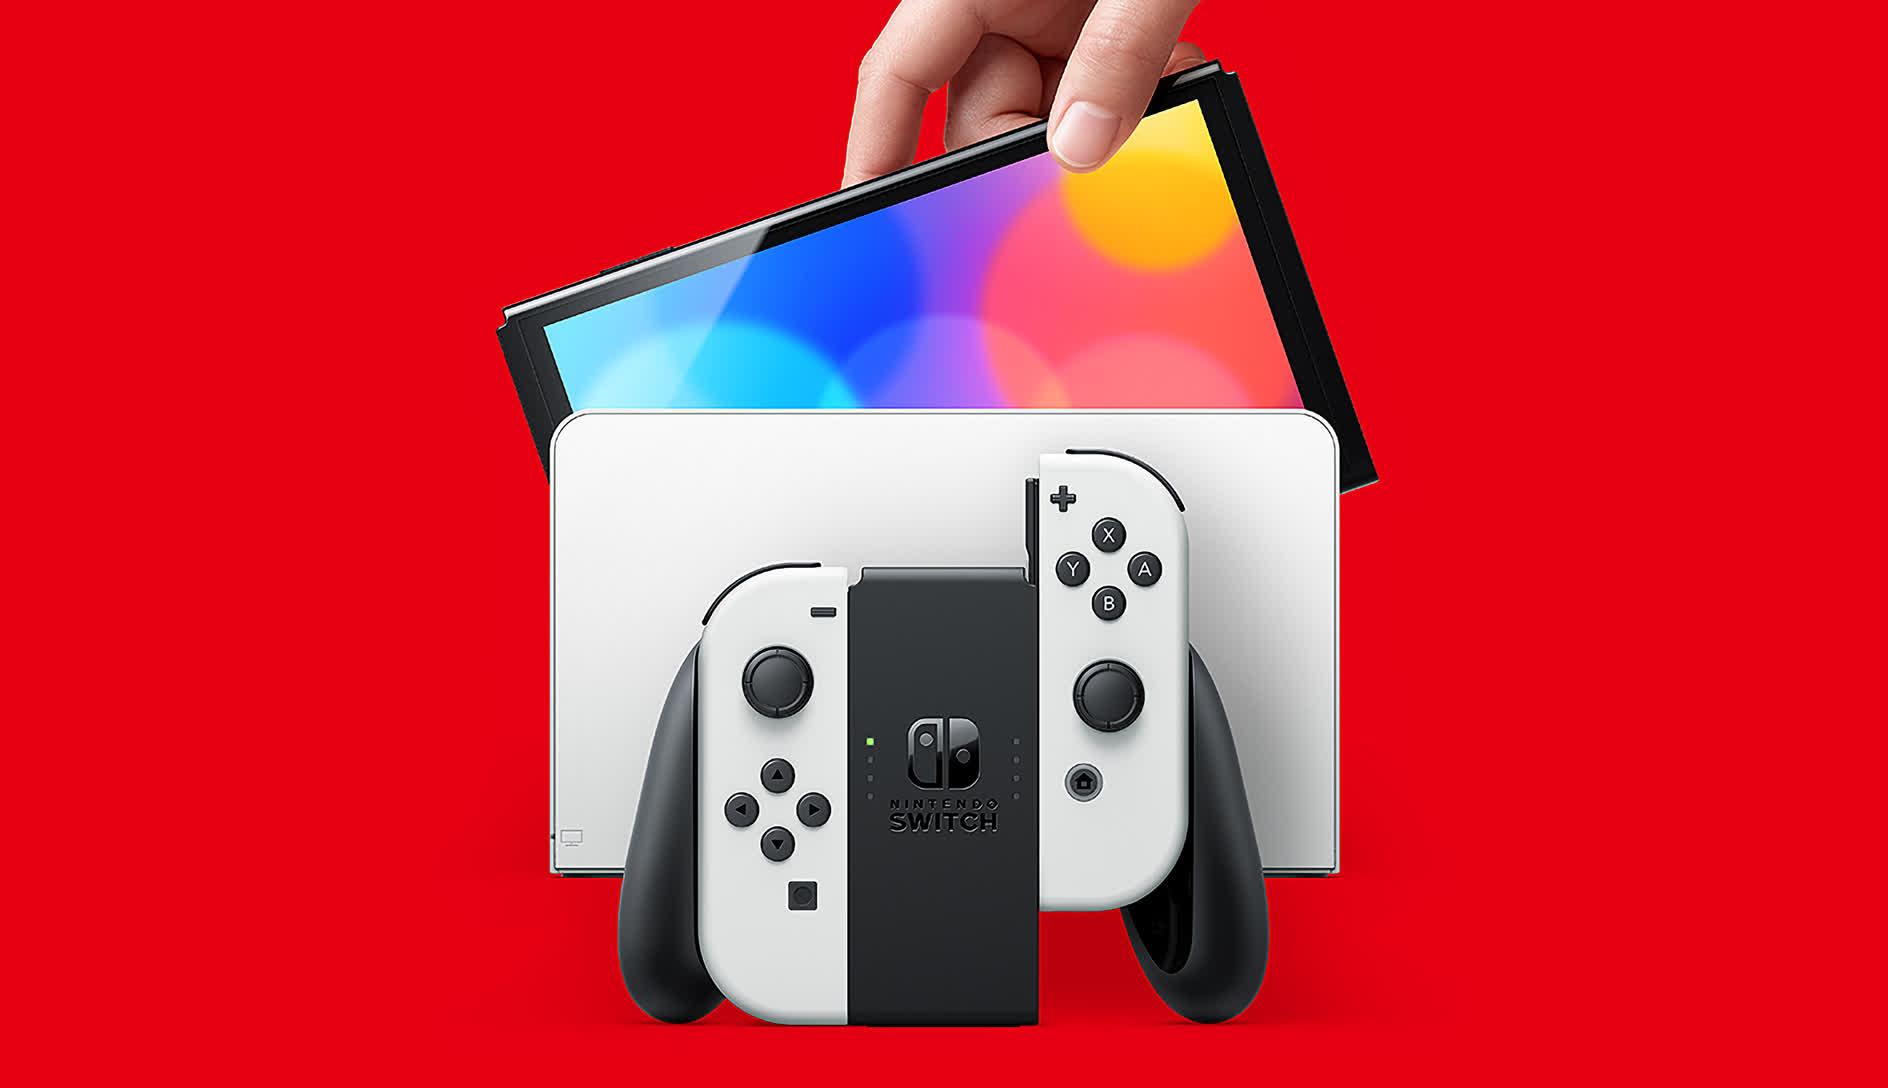 Nintendo might be working on a DLSS-like technology for the Nintendo Switch